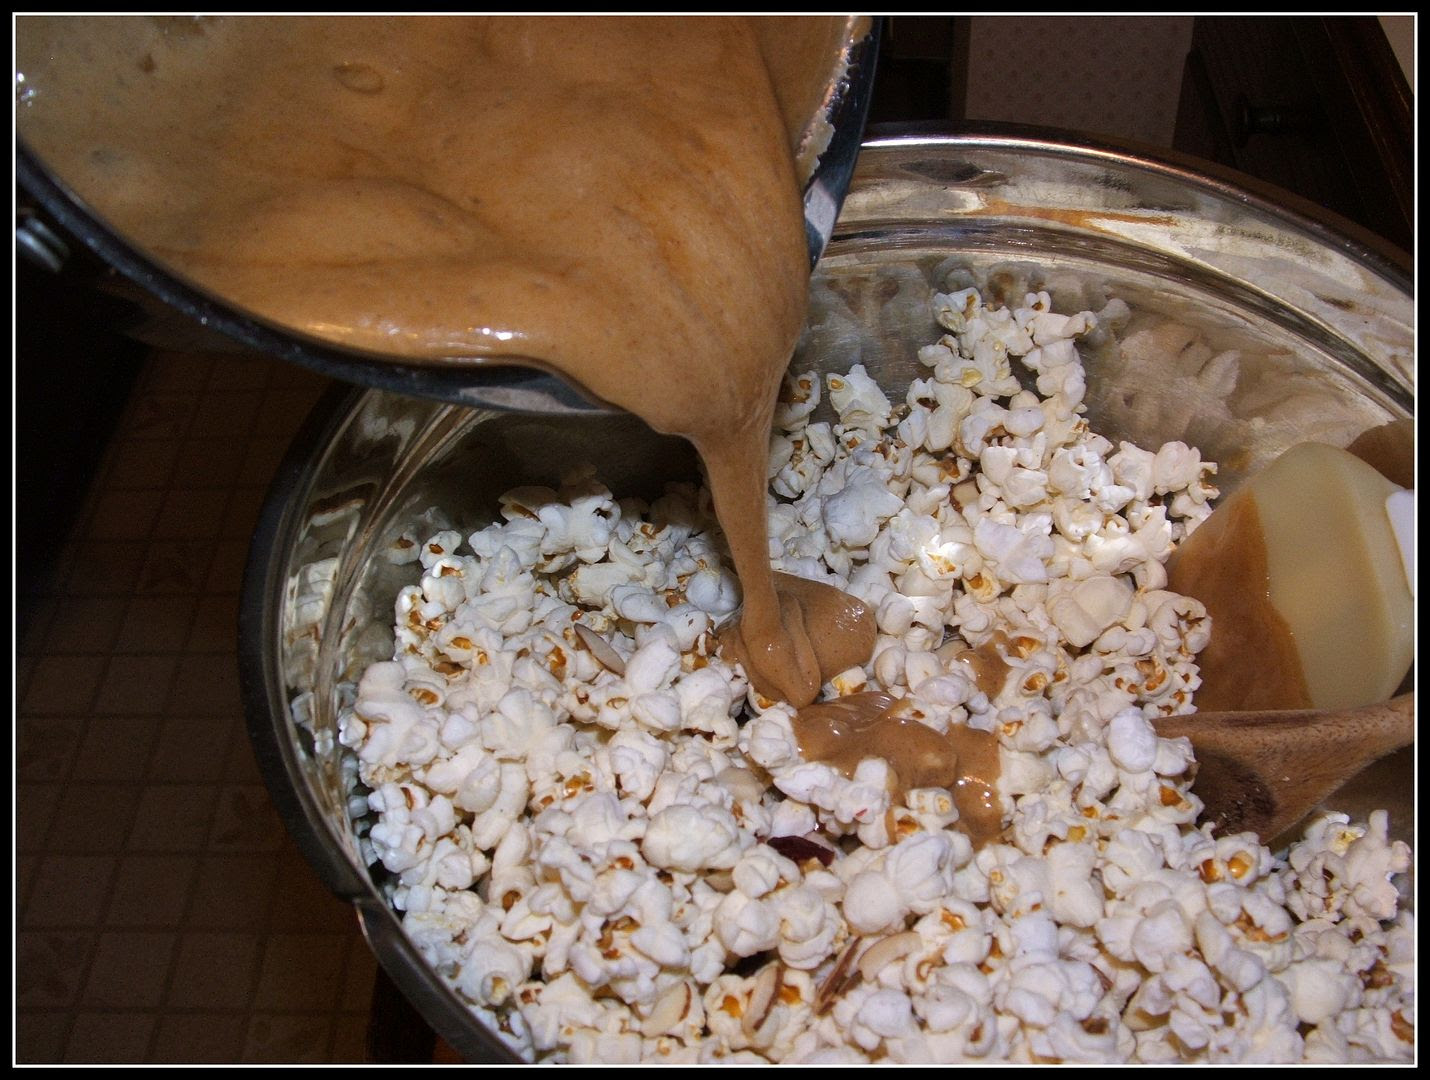 caramel popcorn by Angie Ouellette-Tower for godsgrowinggarden.com photo 005_zpsea08c071.jpg